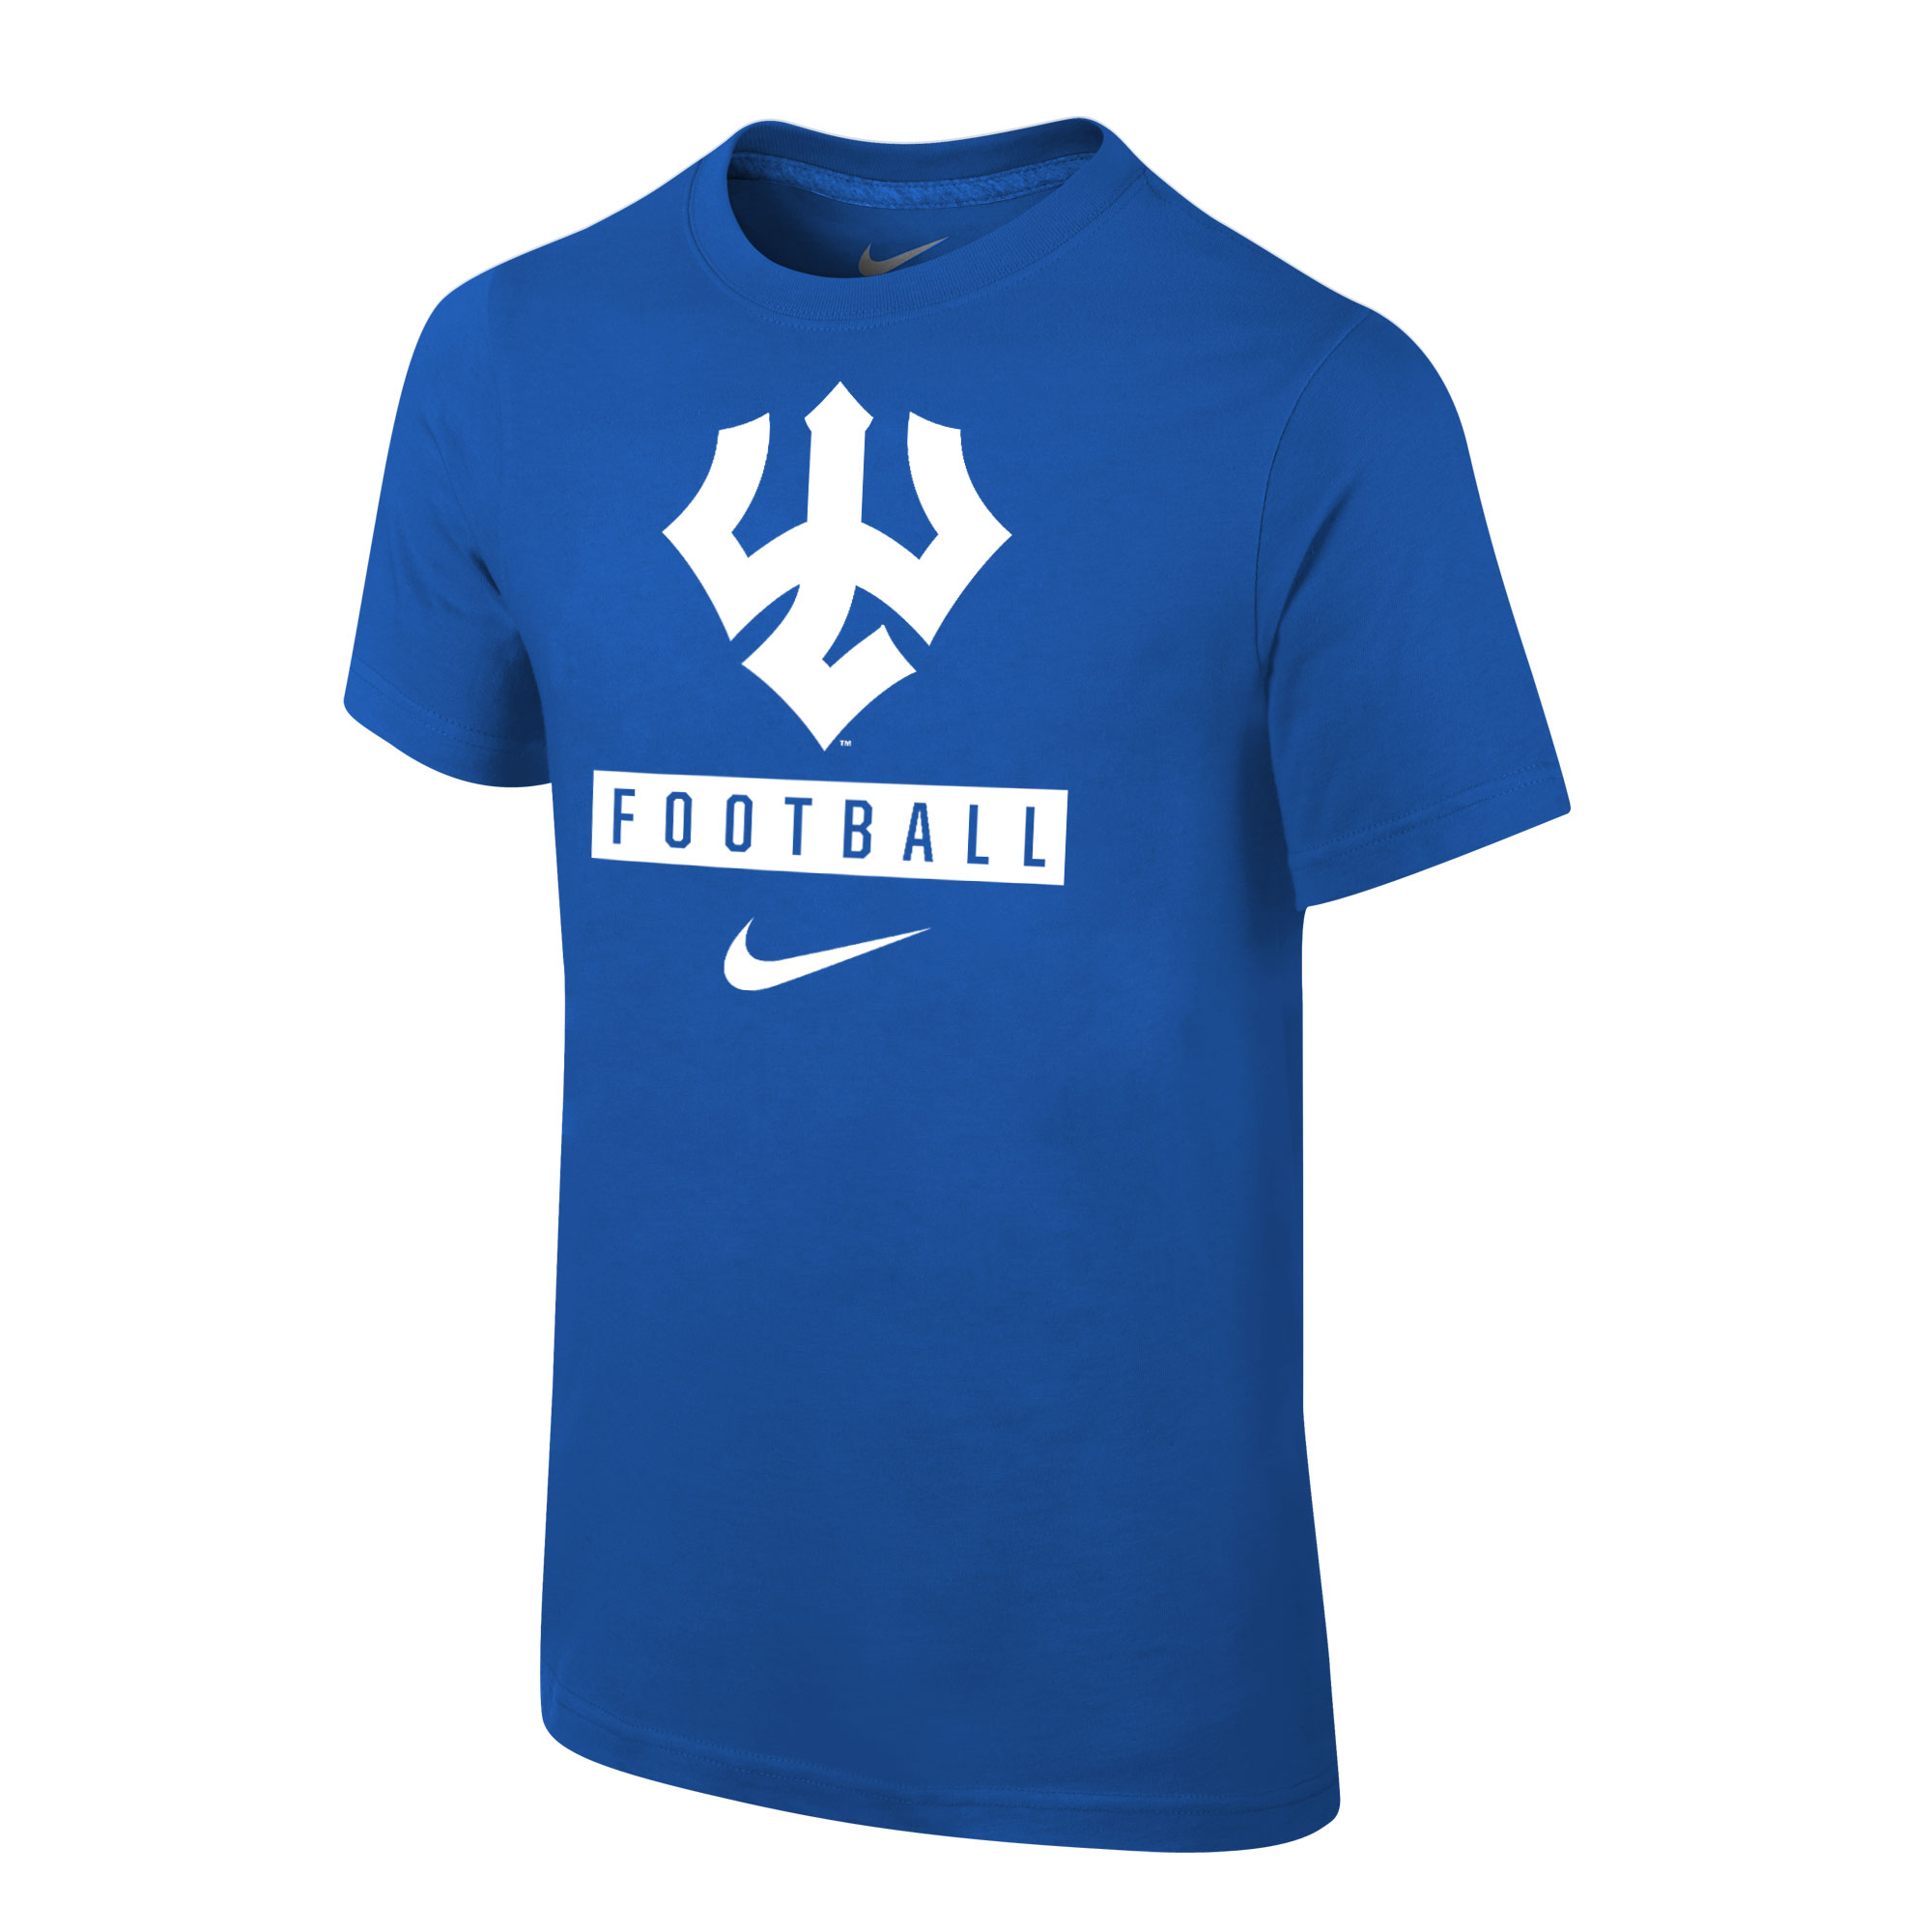 Image For Nike Football Tee, Youth